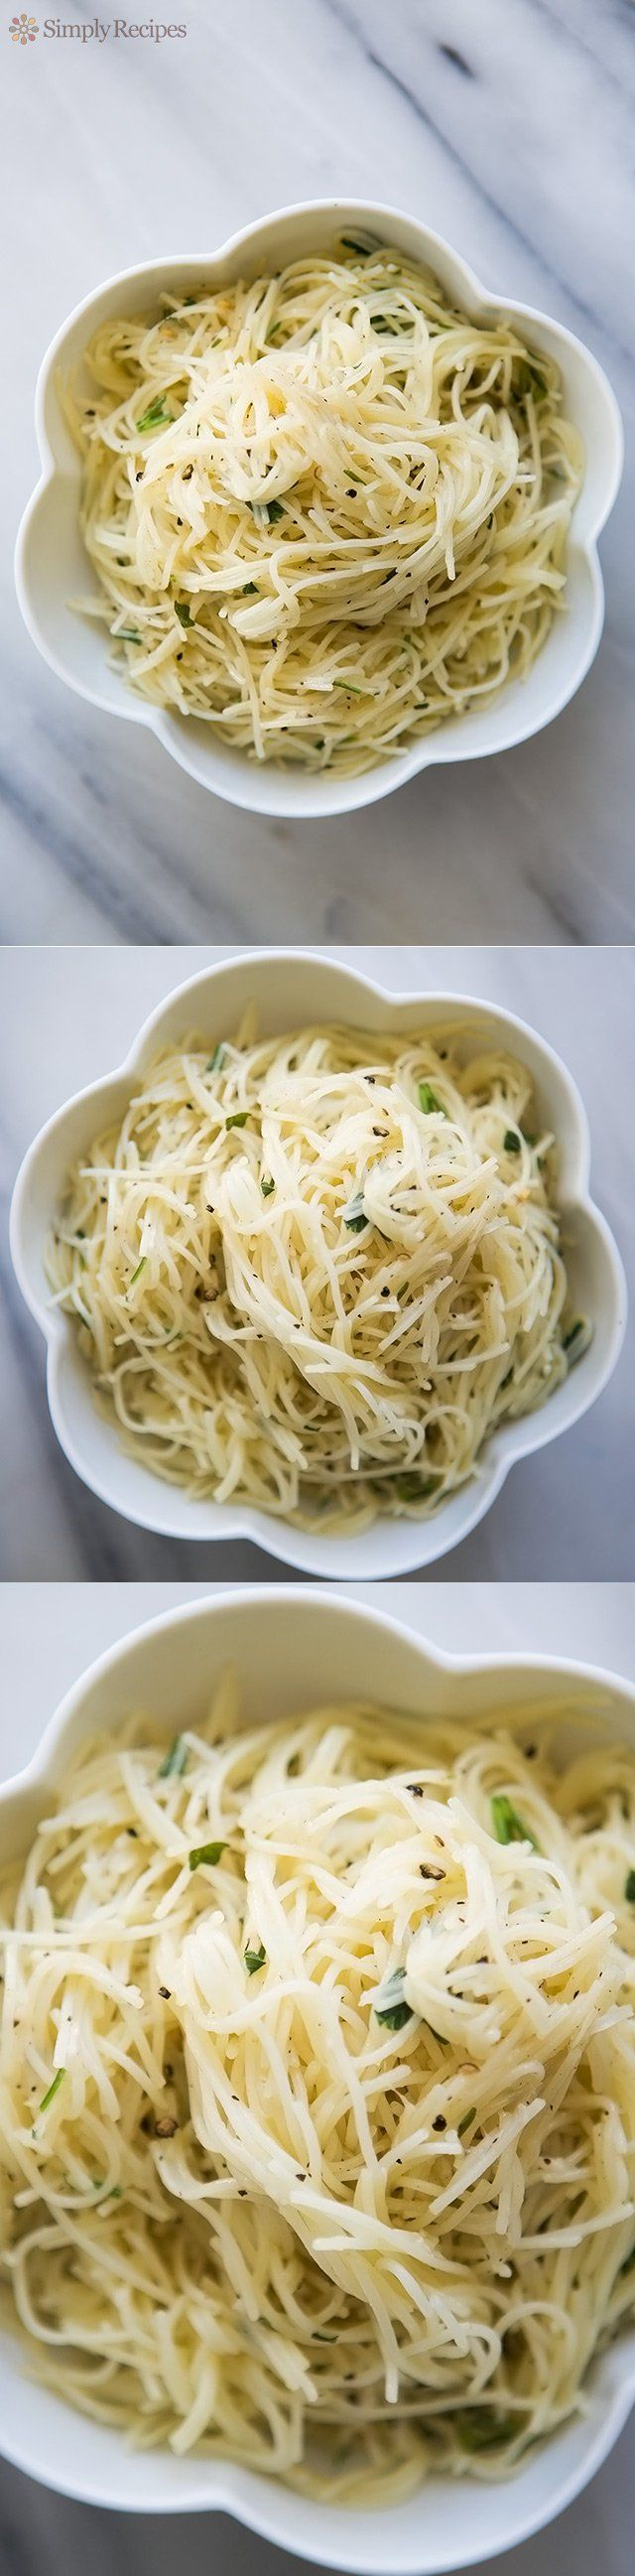 So EASY! Simple angel hair pasta side with an olive oil, garlic, herbs, and Parmesan. Cooks in 10 minutes! On SimplyRecipes.com